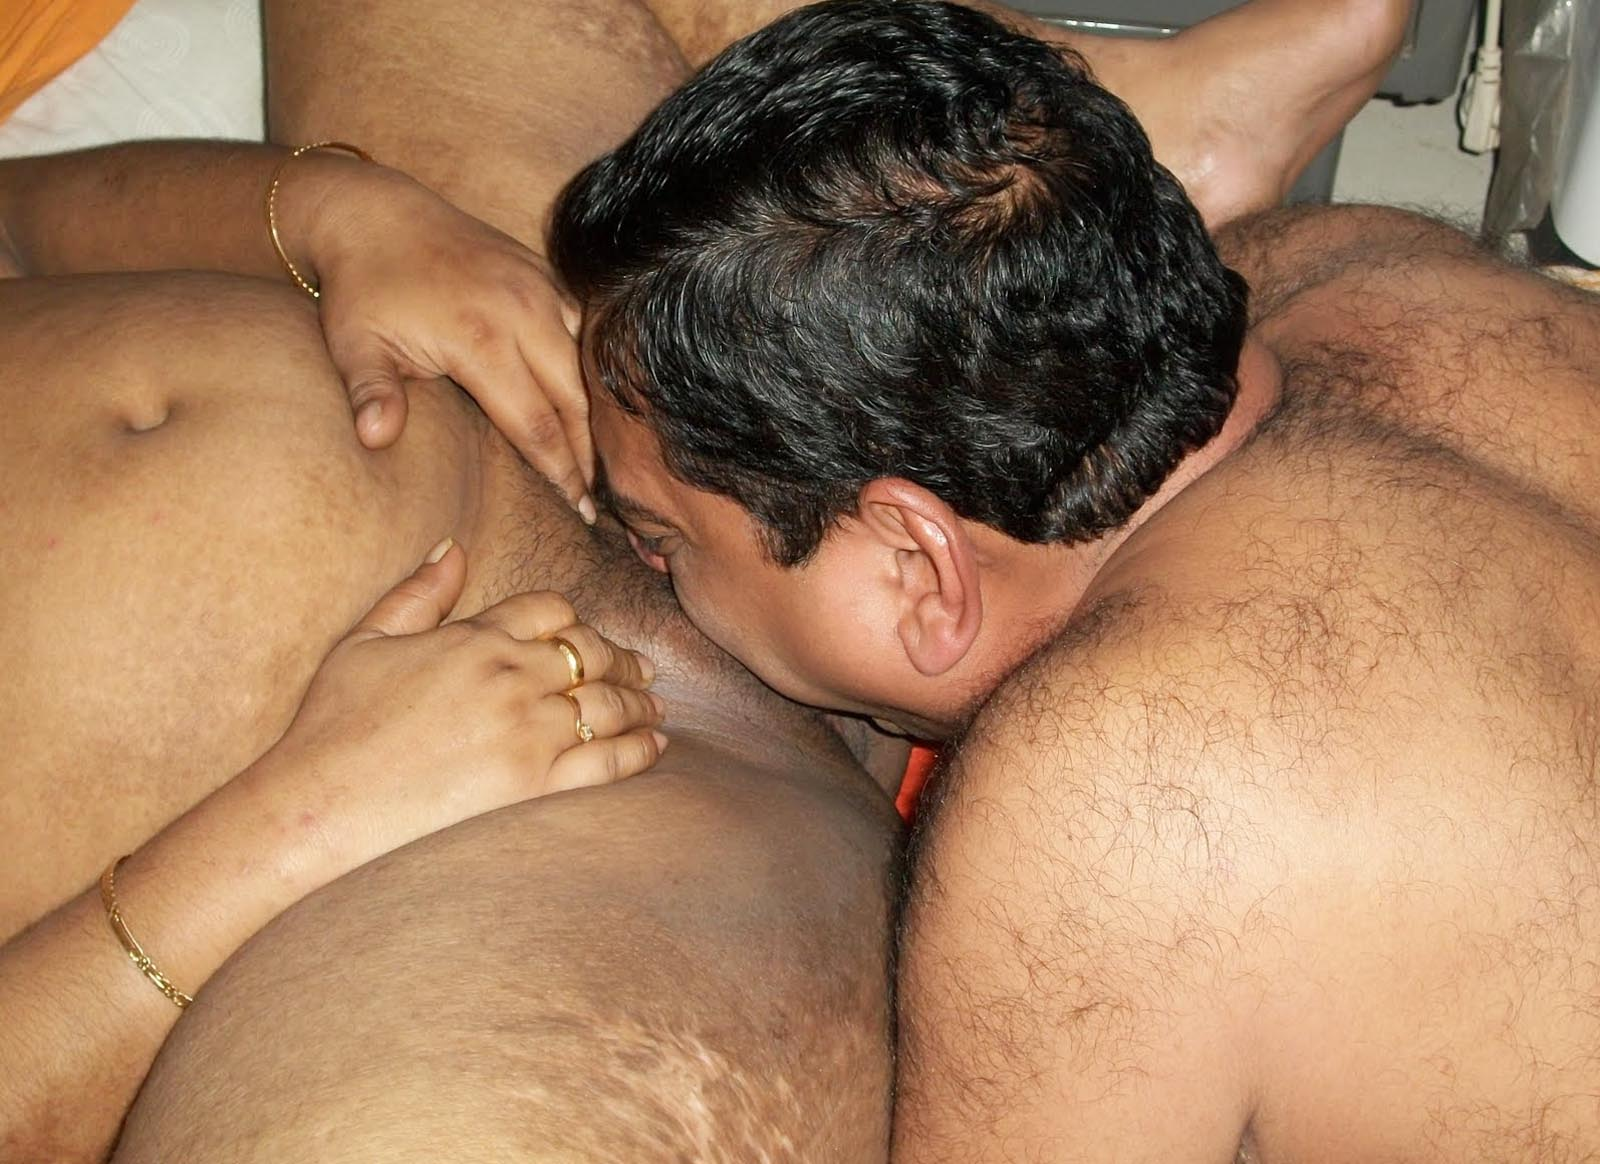 mature couple in sex hiddencam Old Indian Couple Sex Fucking Pictures